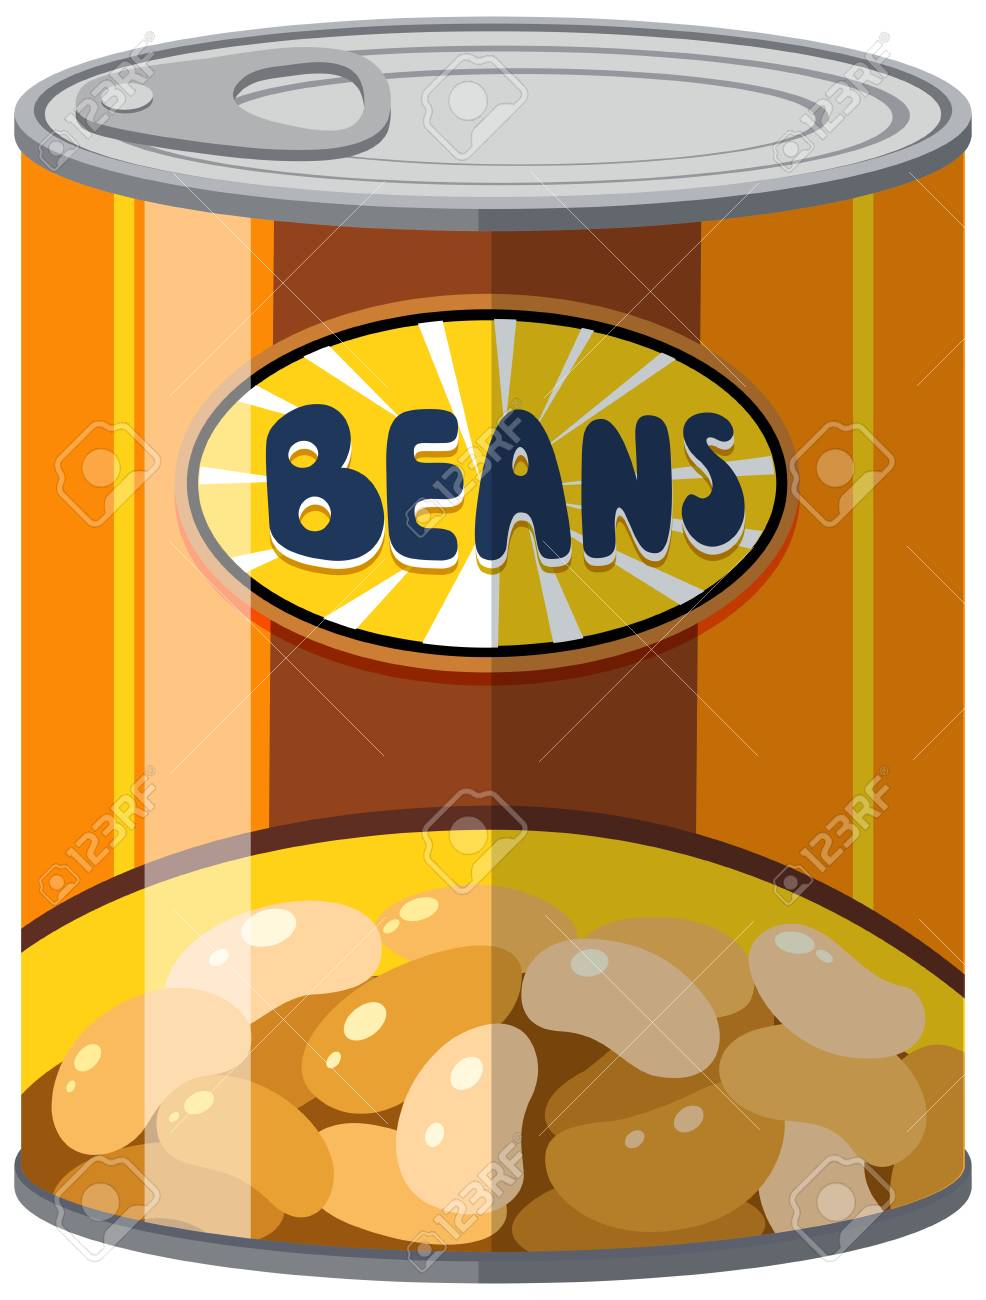 Beans in aluminum can illustration.